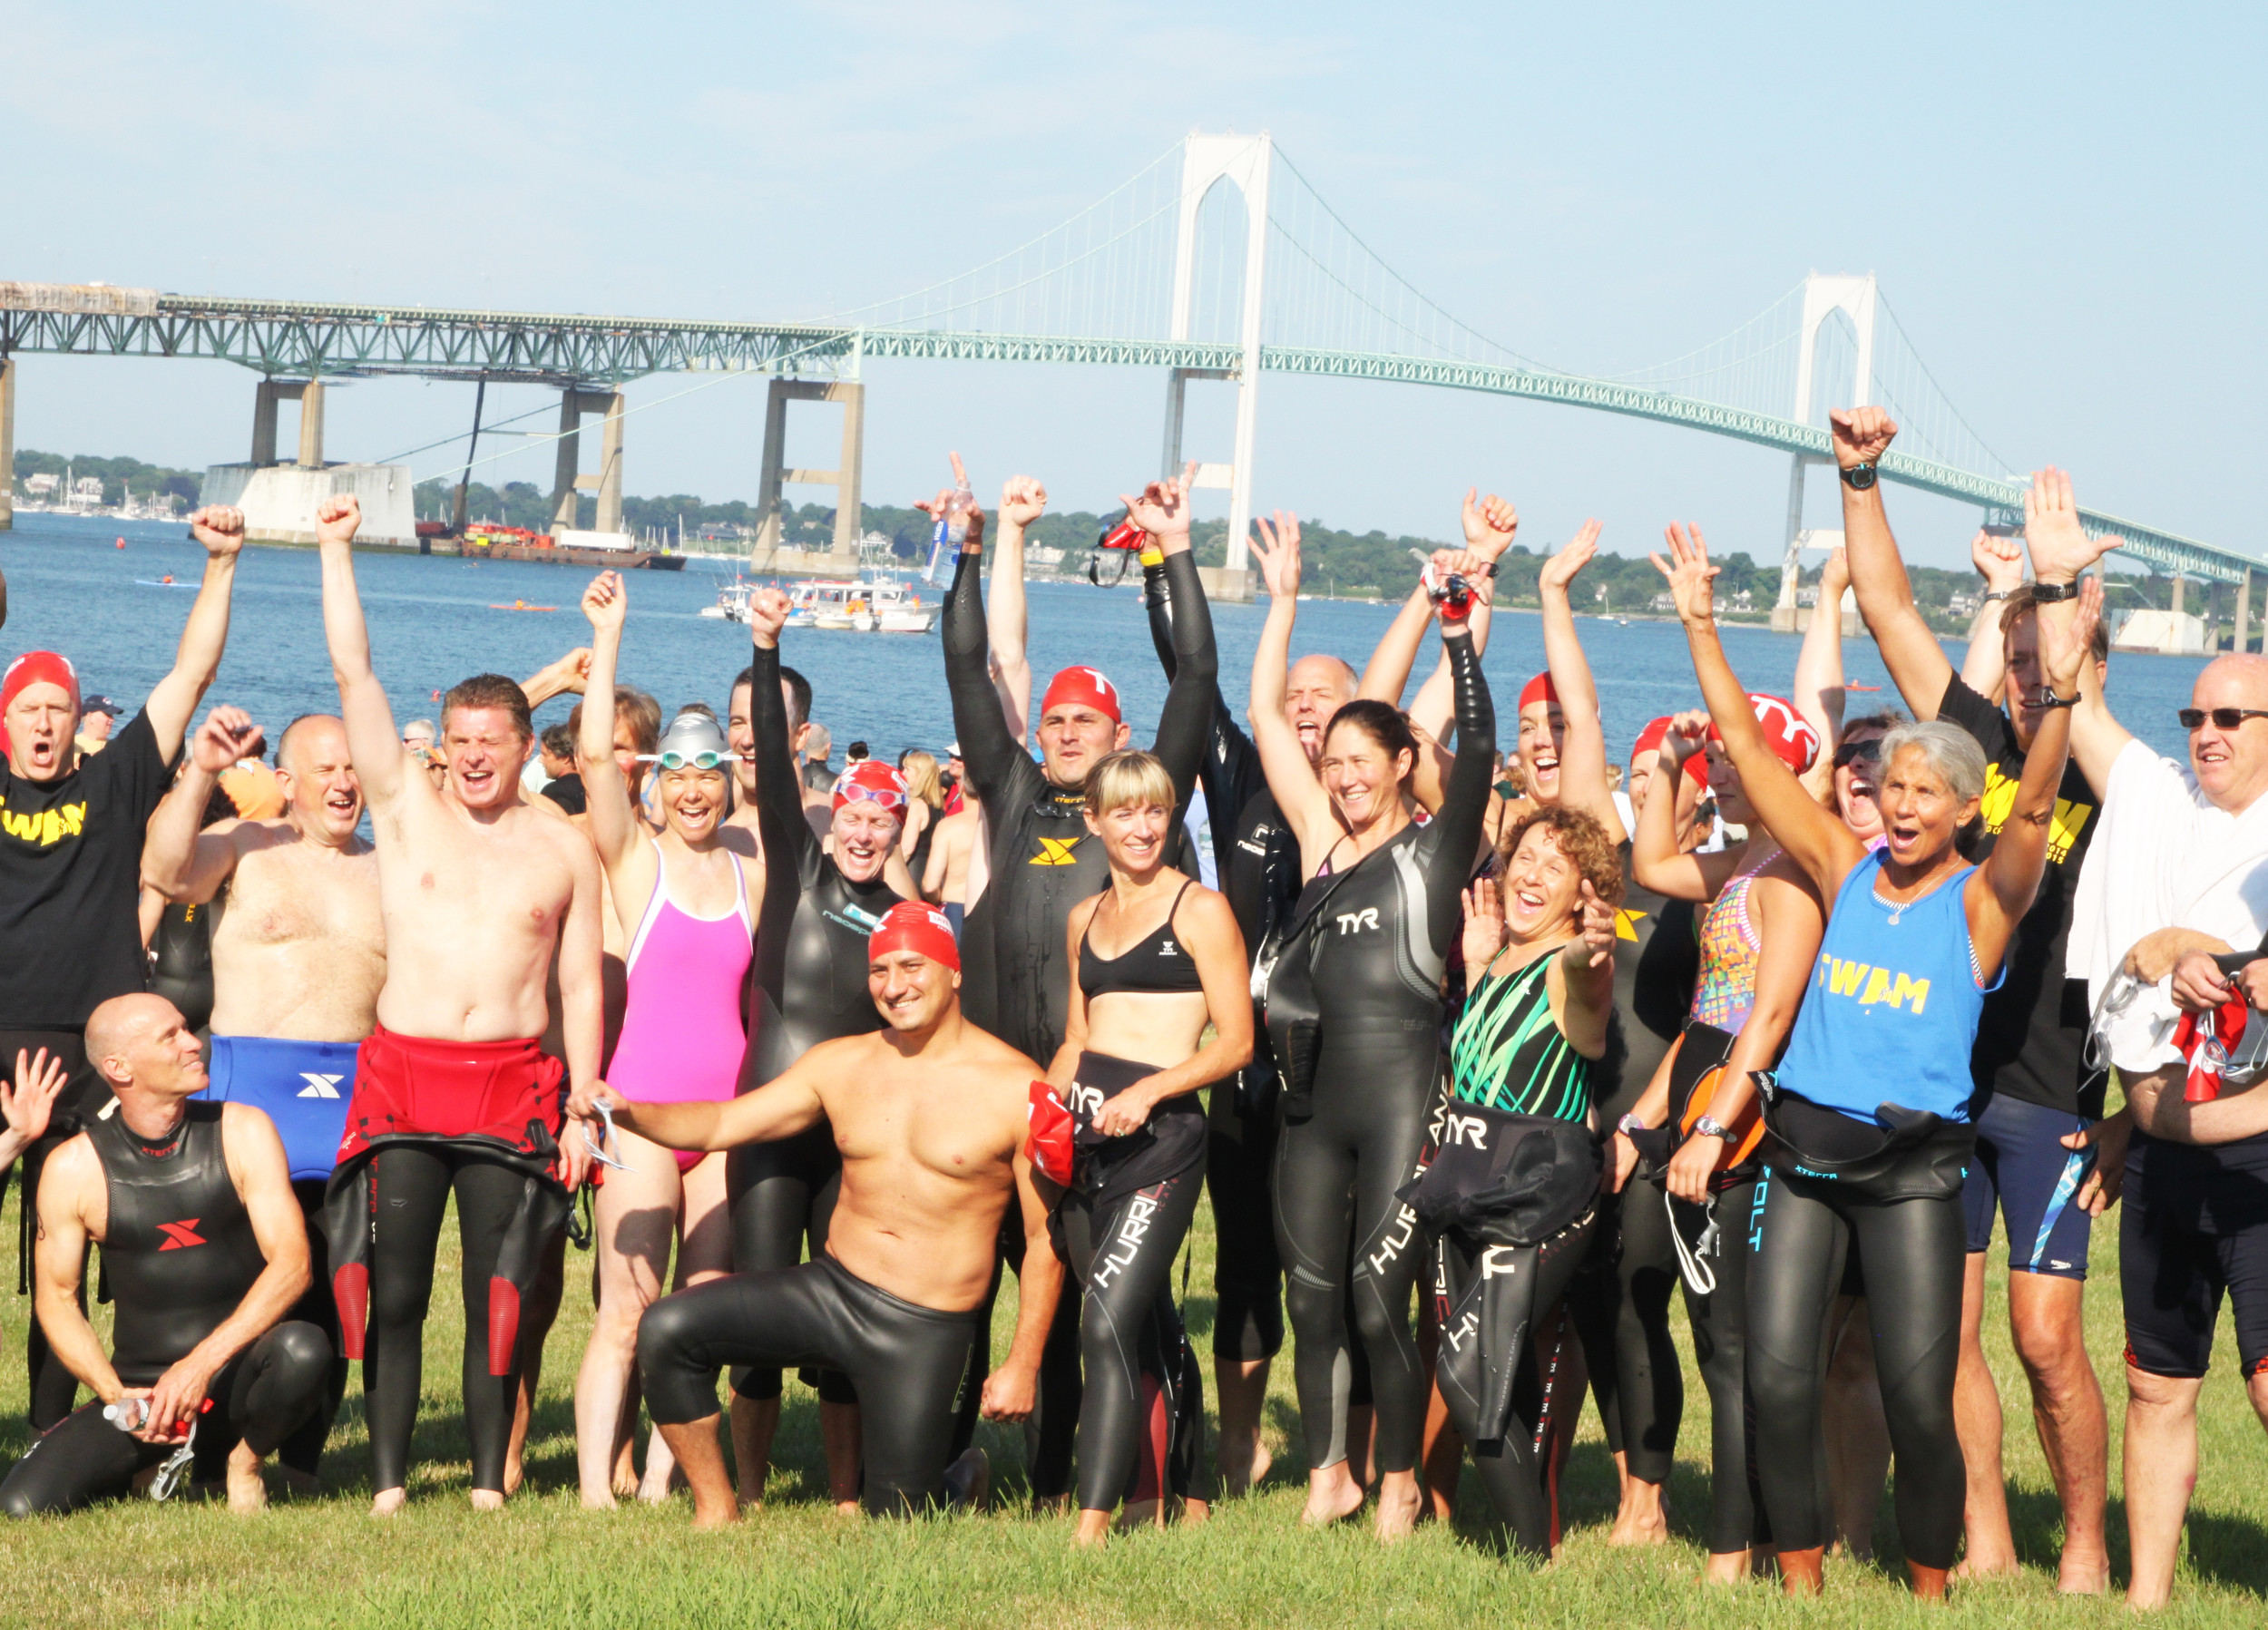 The swimmers who participated in the 2016 Save The Bay annual swim, celebrating its conclusion.